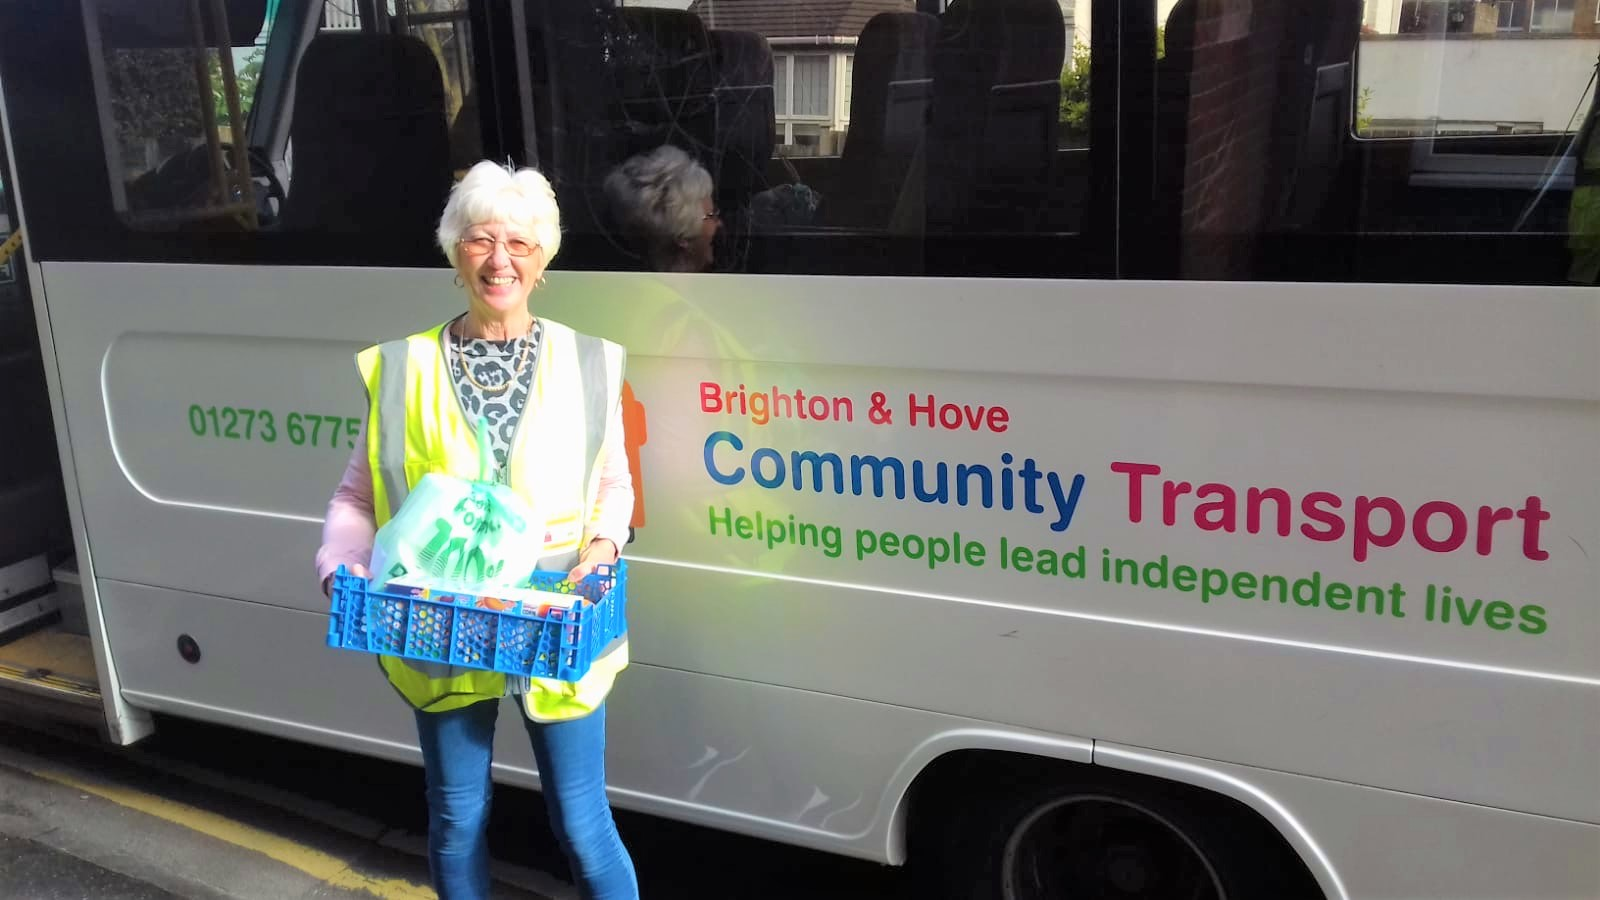 patricia-delivering-food-for-the-community-transport-food-delivery-service